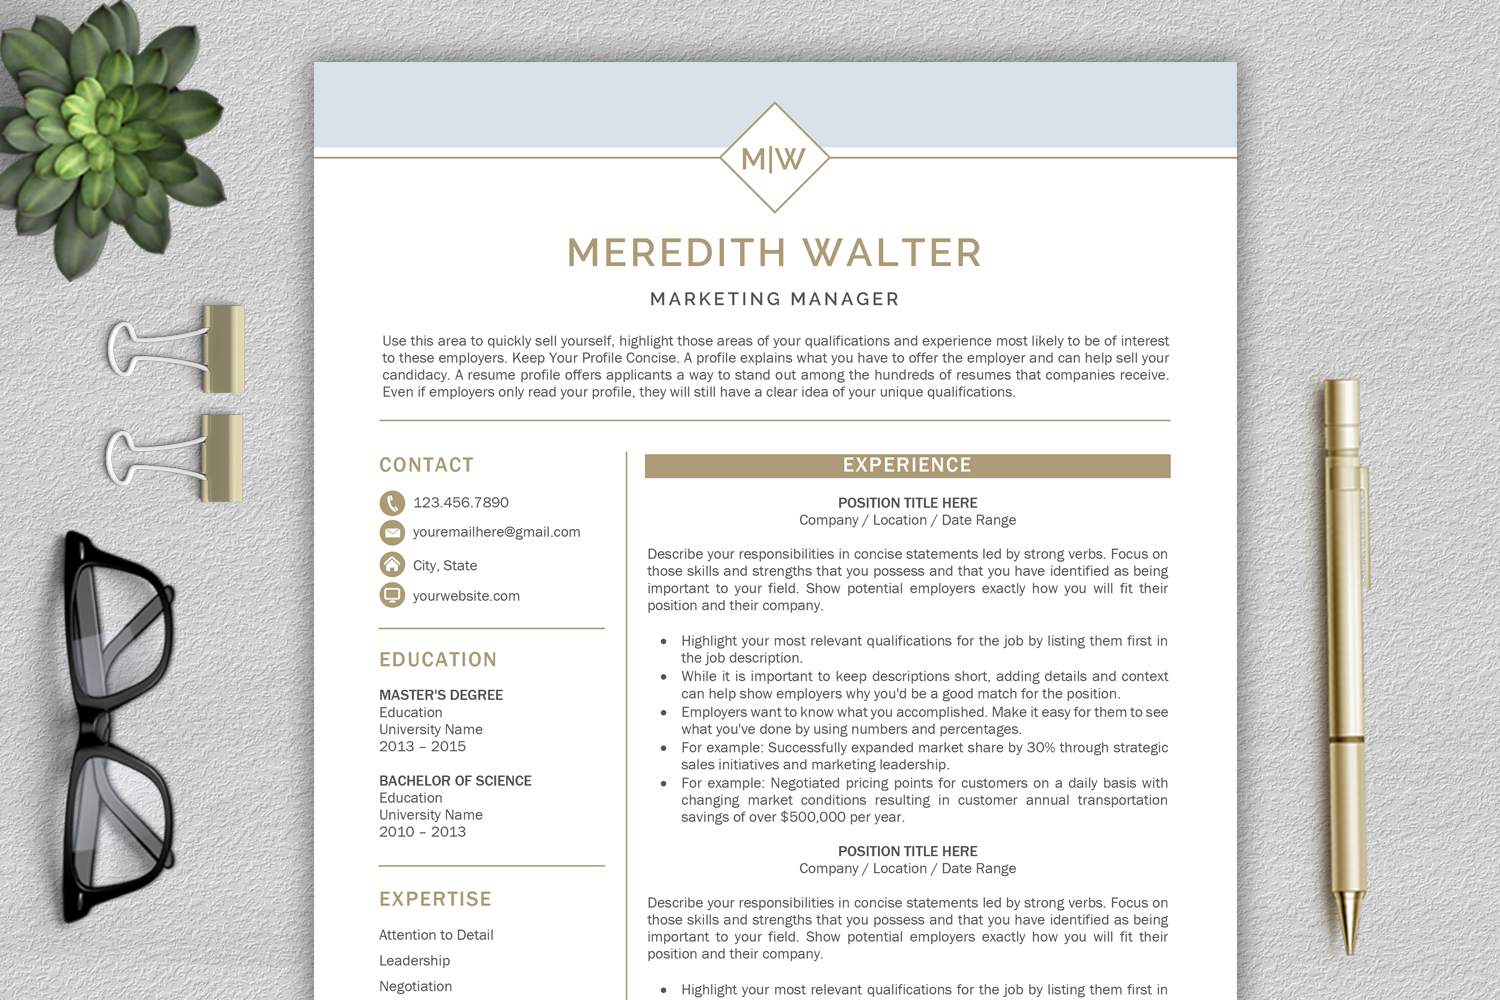 Resume Template / CV Templates, Professional Resume Template example image 1